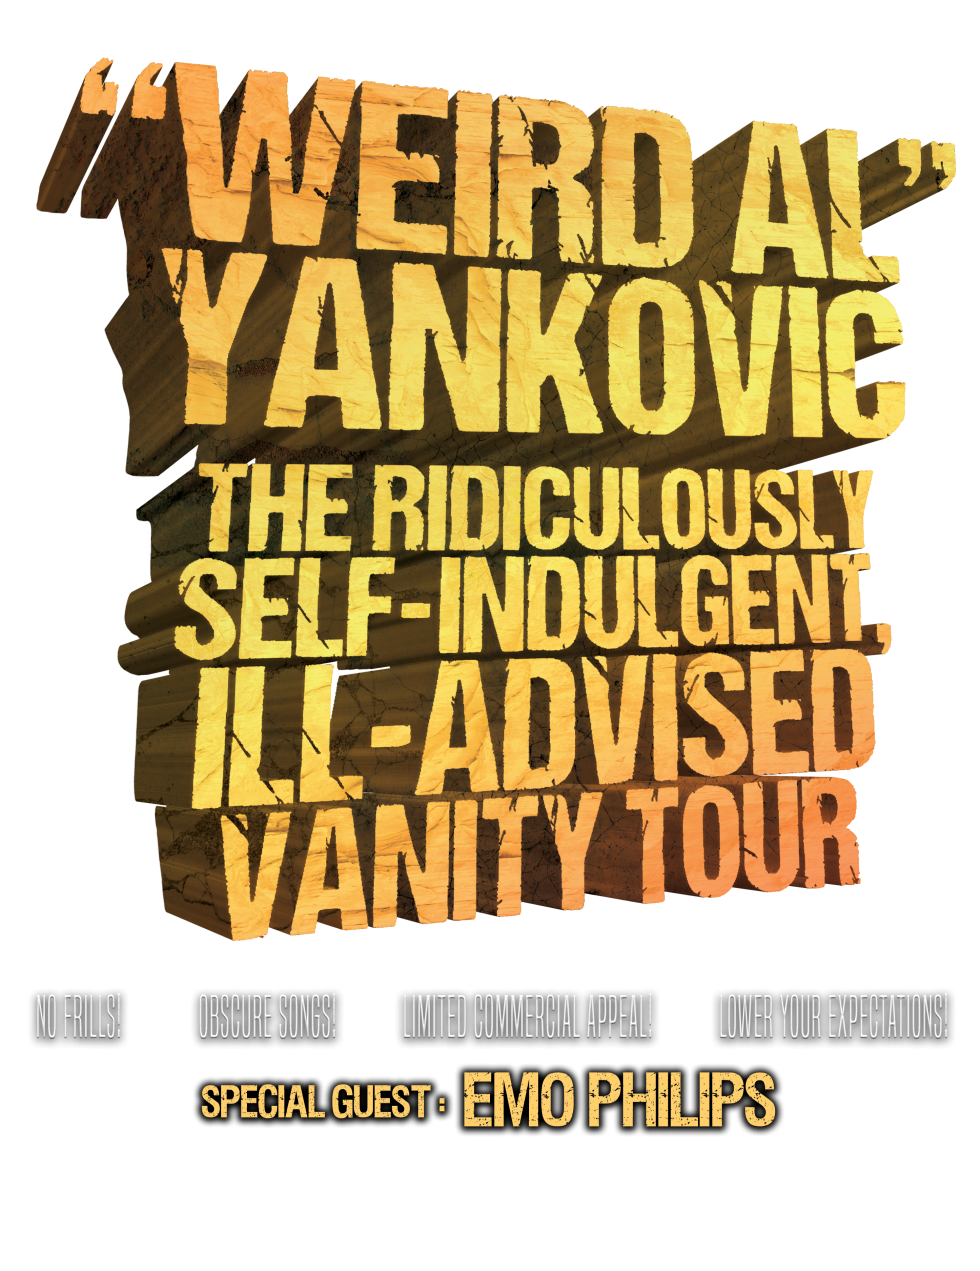 'Weird Al' Yankovic The Ridiculously Self-Indulgent, Ill-Advised, Vanity Tour 2018